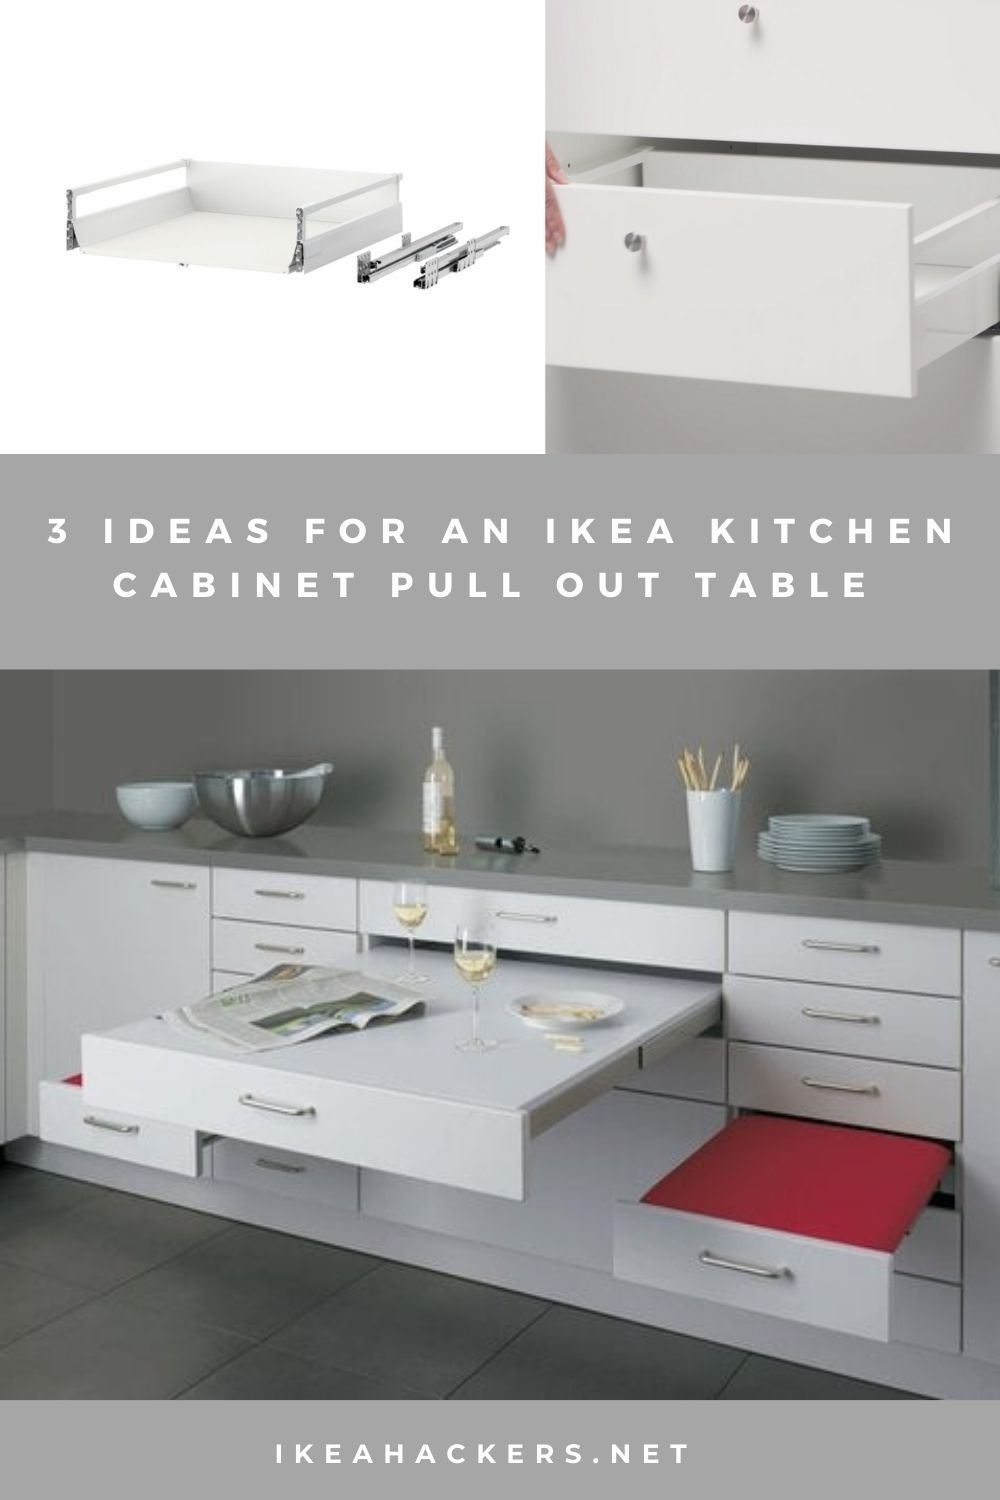 3 Ideas For A Kitchen Cabinet Pull Out Table Ikea Hackers Kitchen Cabinet Pulls Kitchen Cabinets Kitchen Concepts